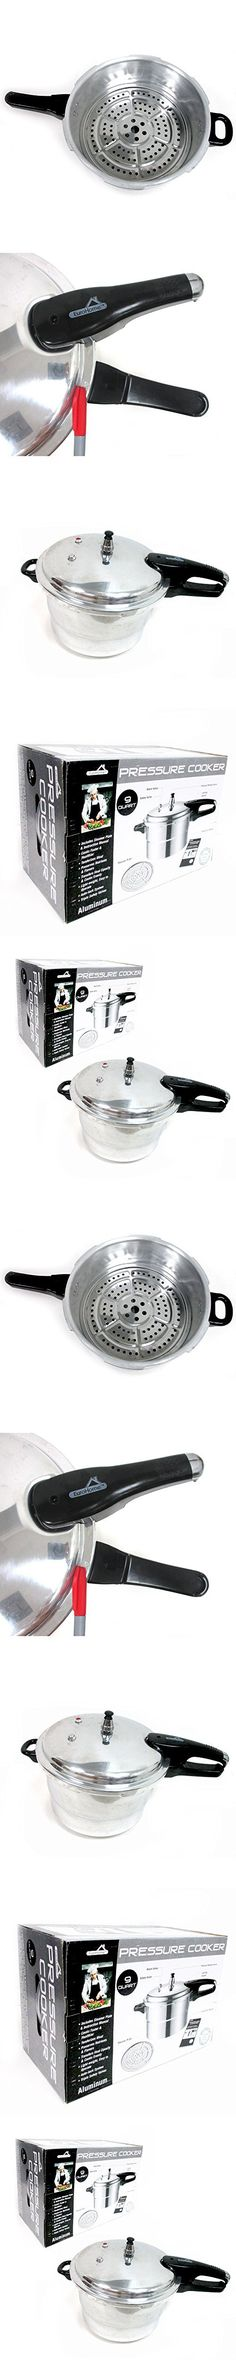 9 Quart Pressure Cooker Kitchen Cookware Pot Steamer Heavy Duty Aluminum New !